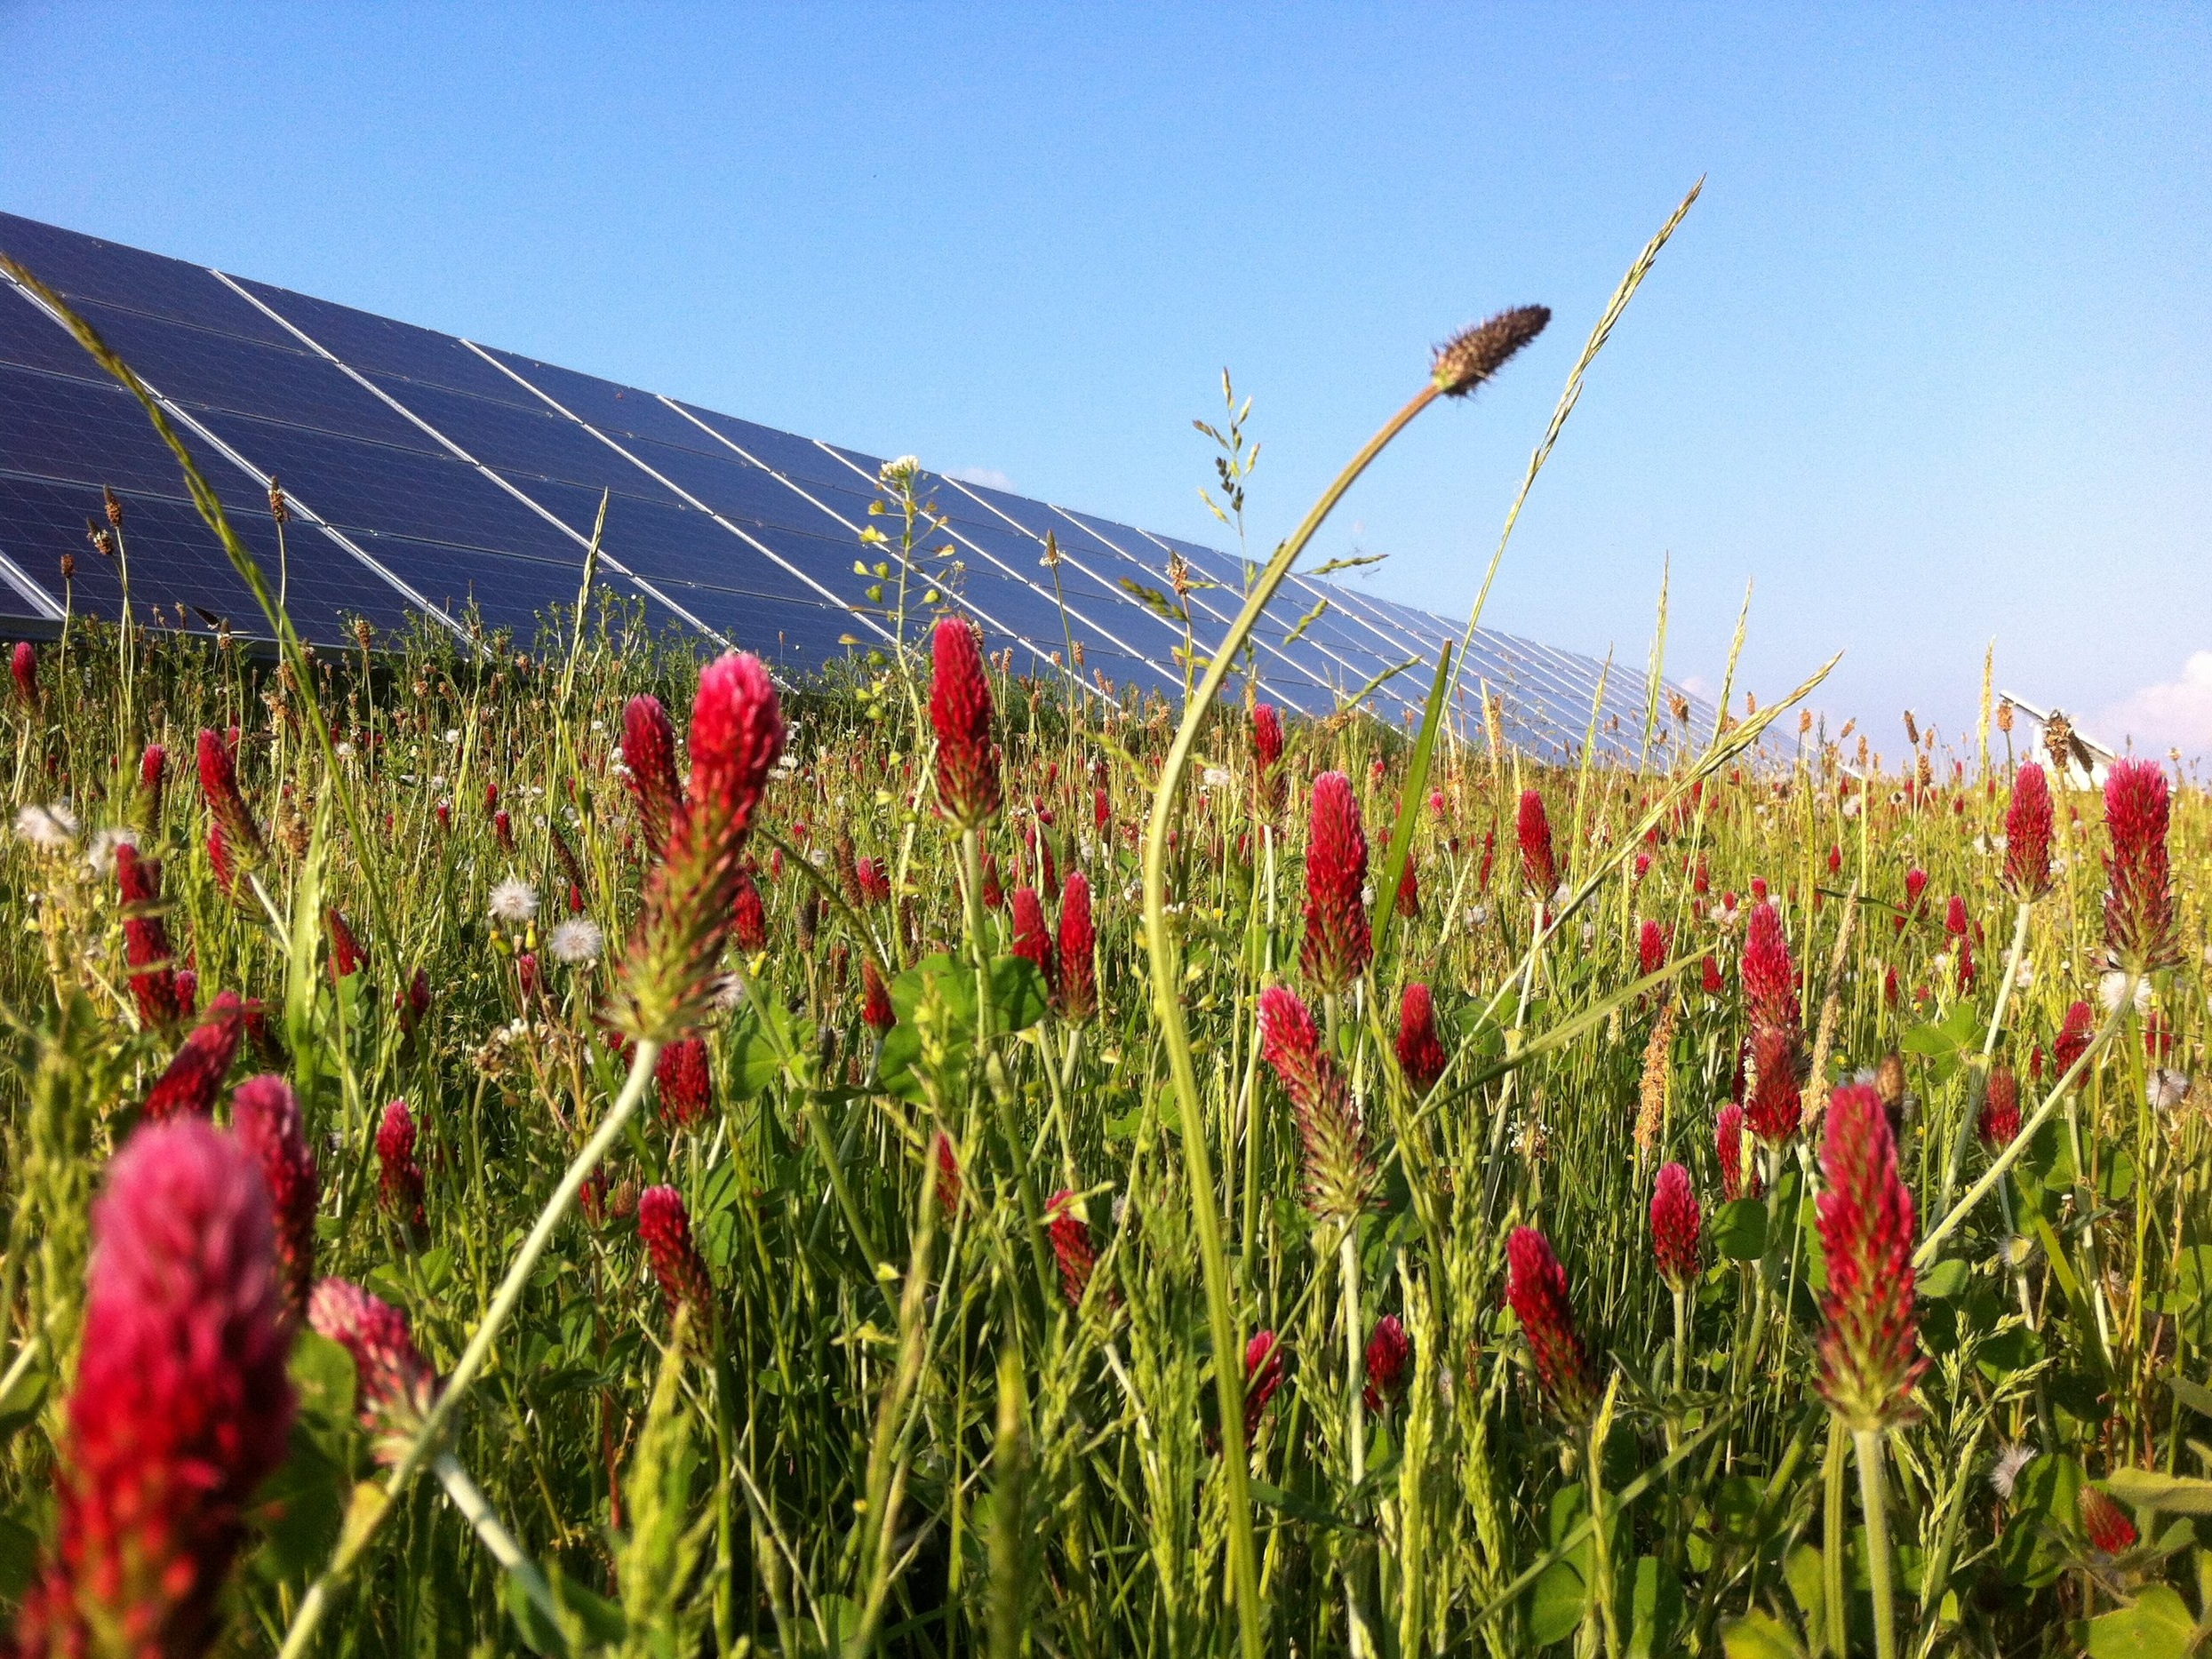 Eden+Renewables+Pollinator-Friendly+Solar+Farms+14.jpg